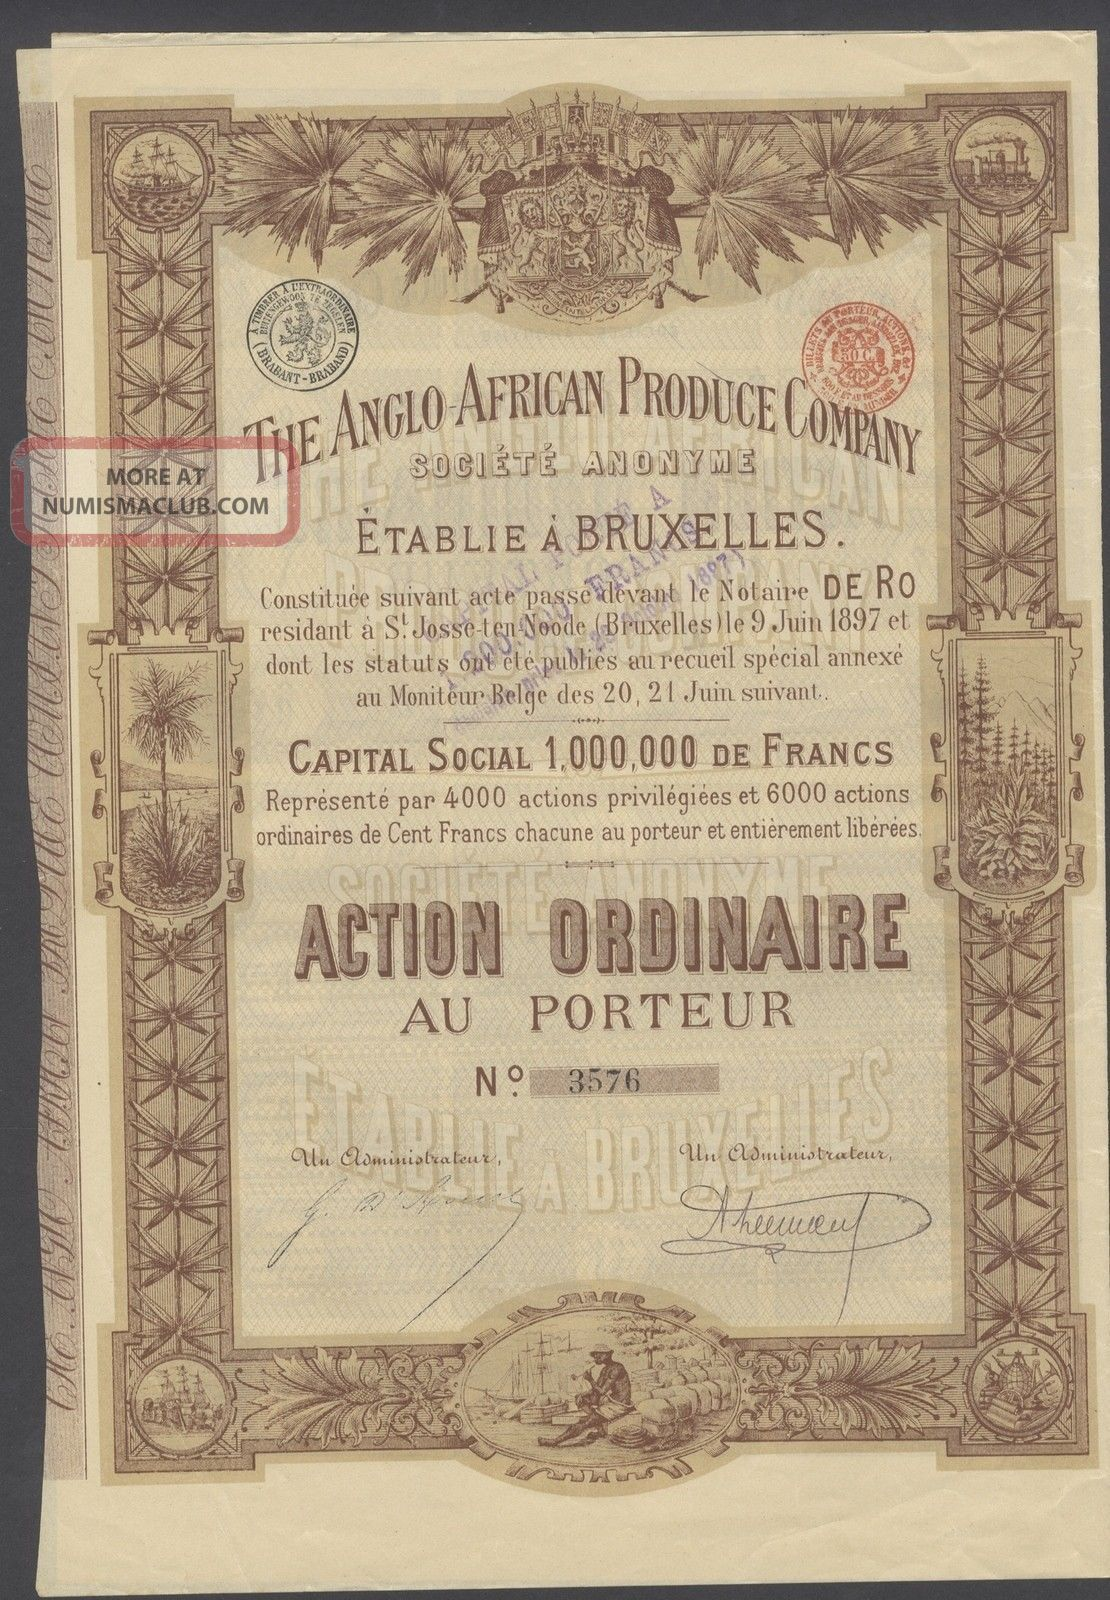 Belgium 1897 Illustrated Bond Anglo African Produce Co - Tabac Tobacco.  R4033 World photo